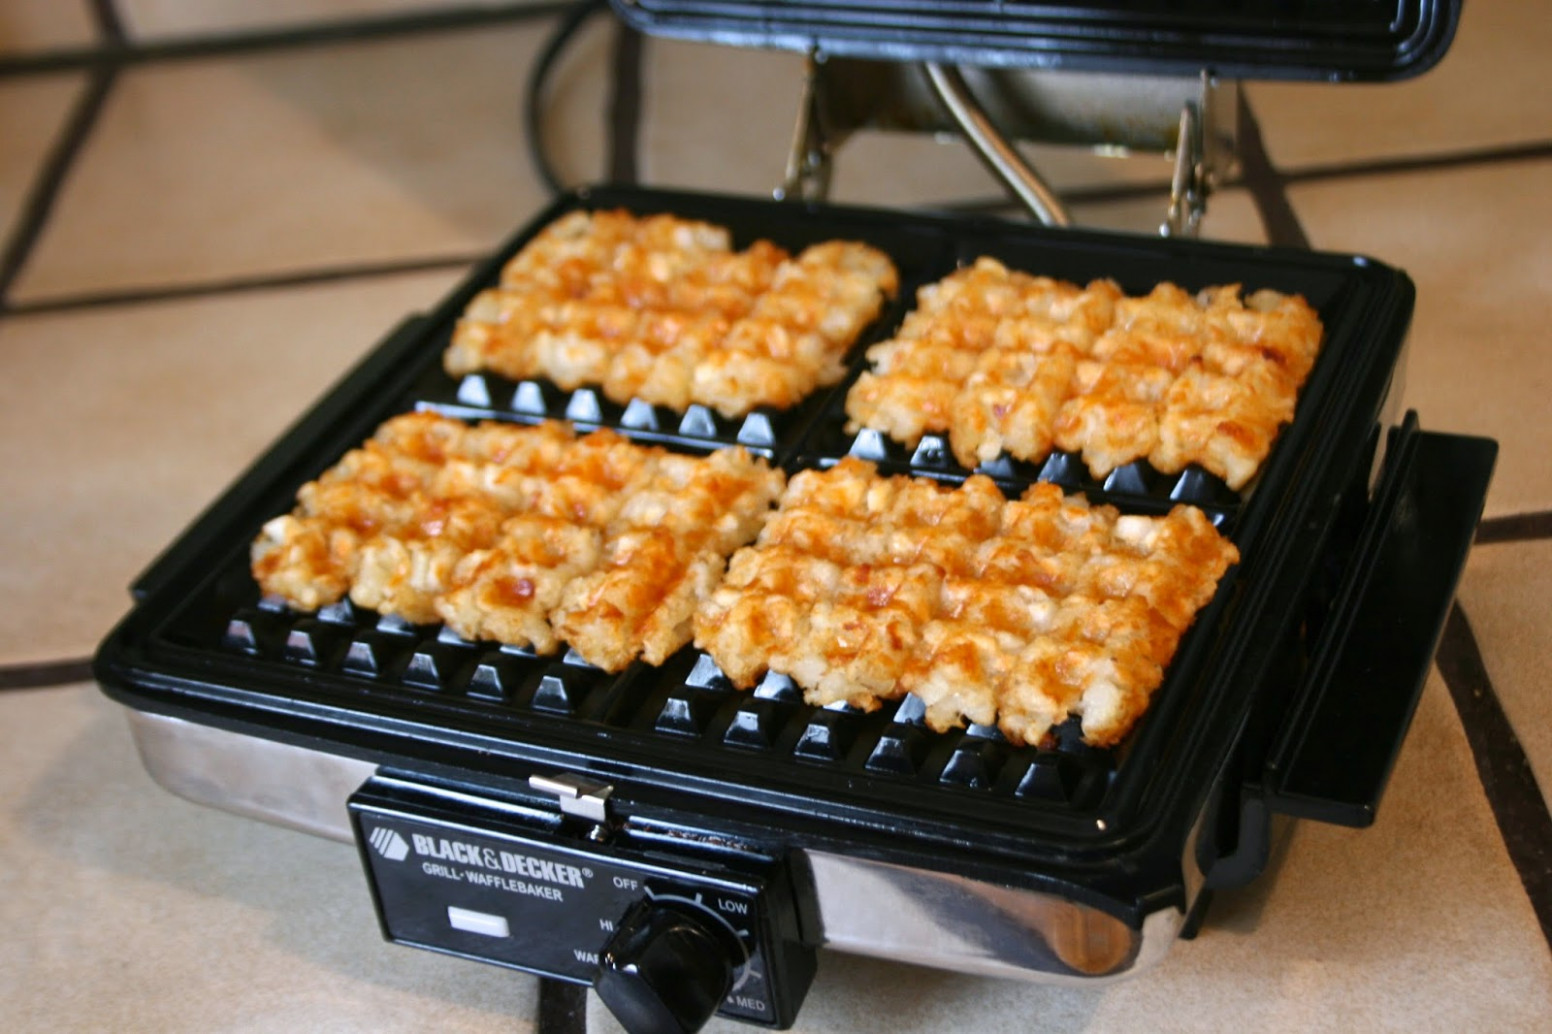 homemade tater tots using frozen hash browns - dinner recipes using frozen hash browns